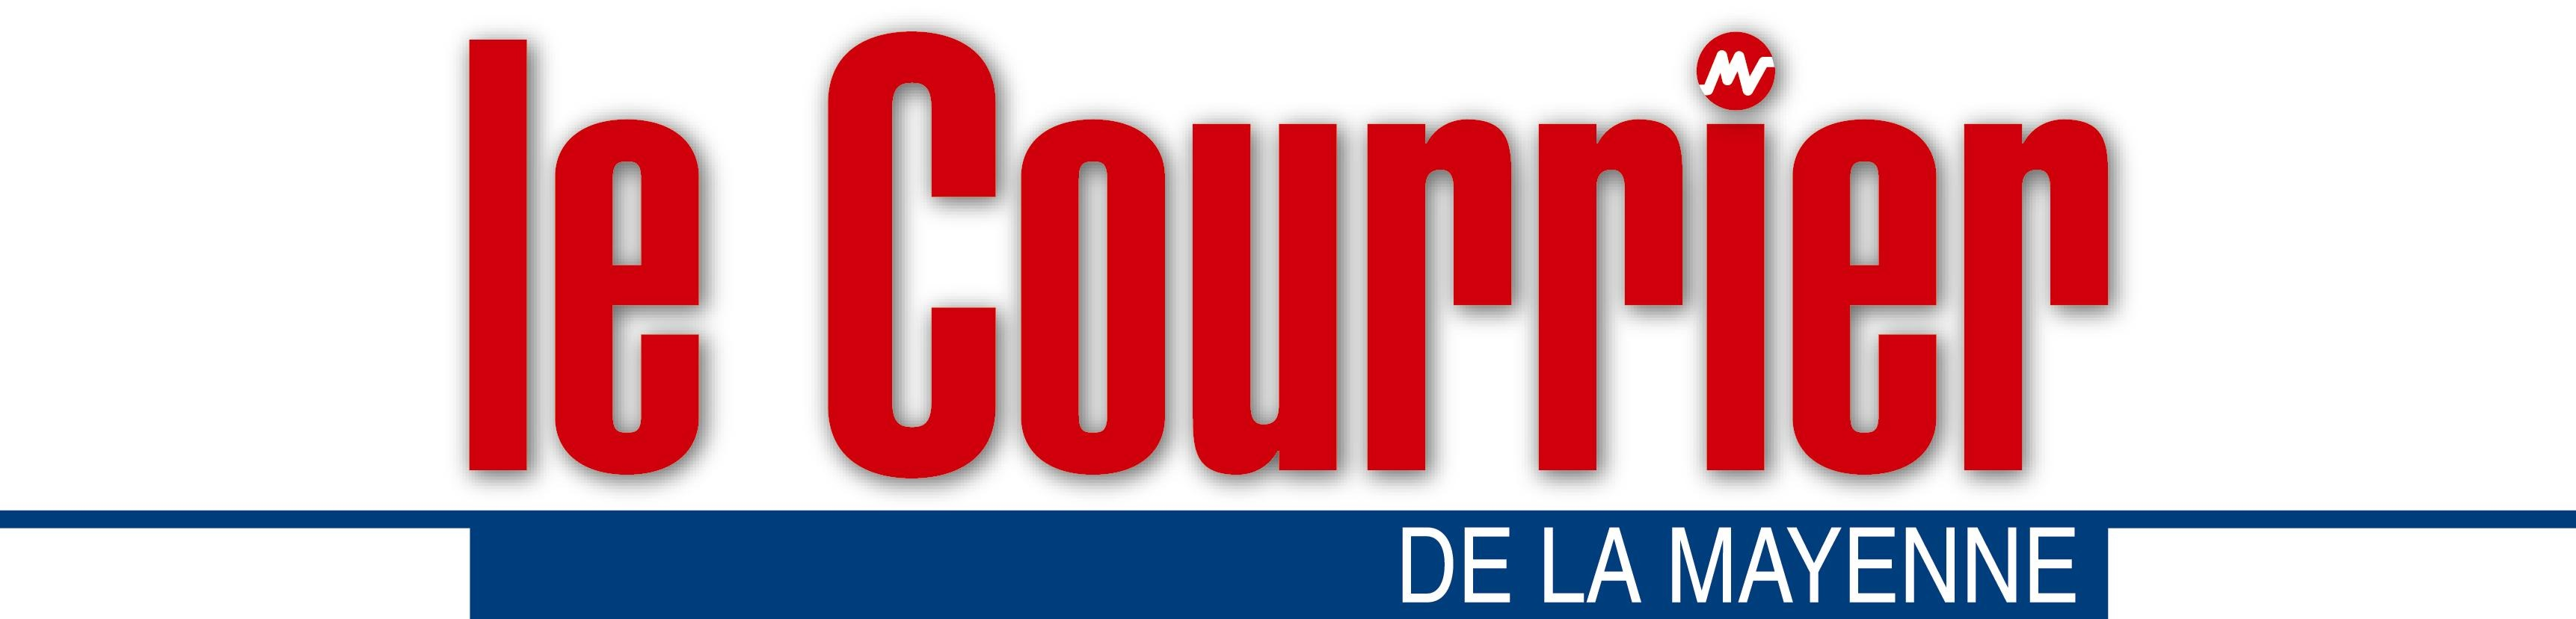 logo-courrier-mayenne